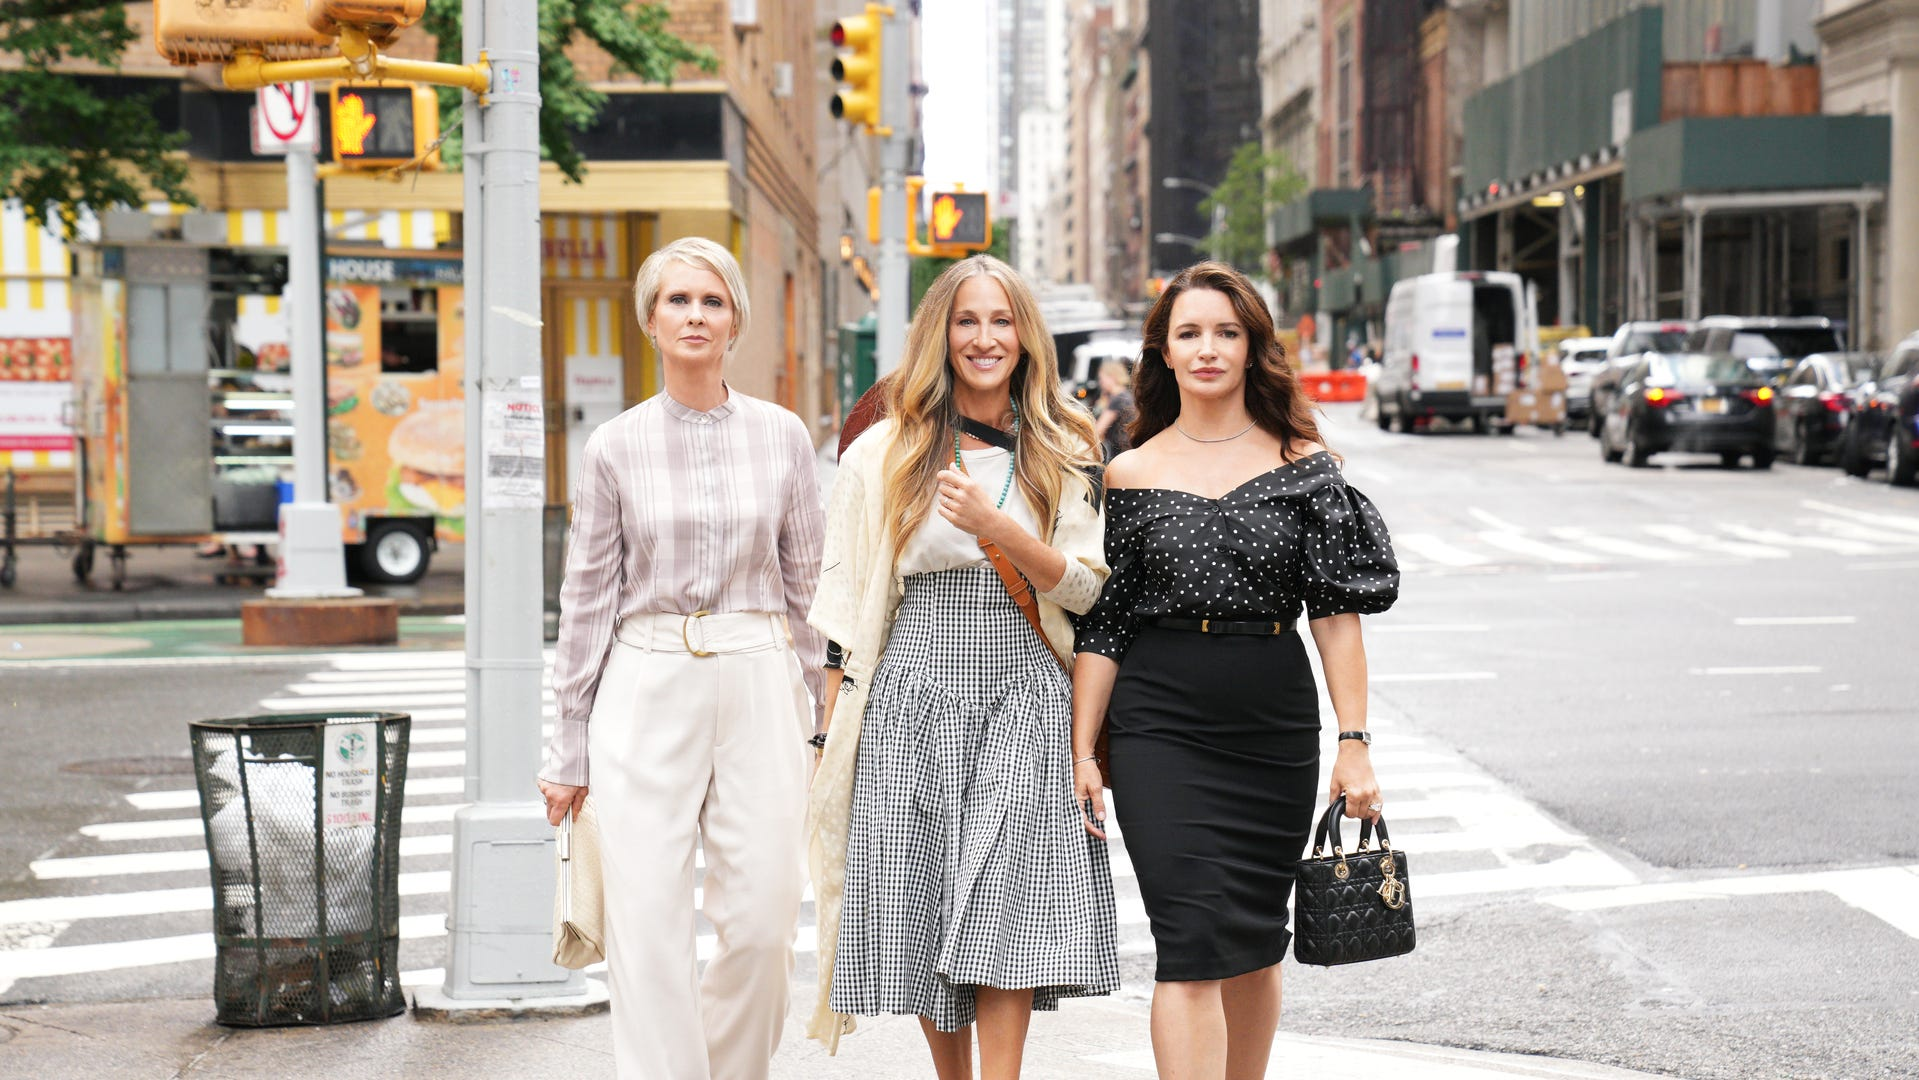 'Sex and the City' reboot: See the first-look photo of HBO Max's 'And Just Like That...'